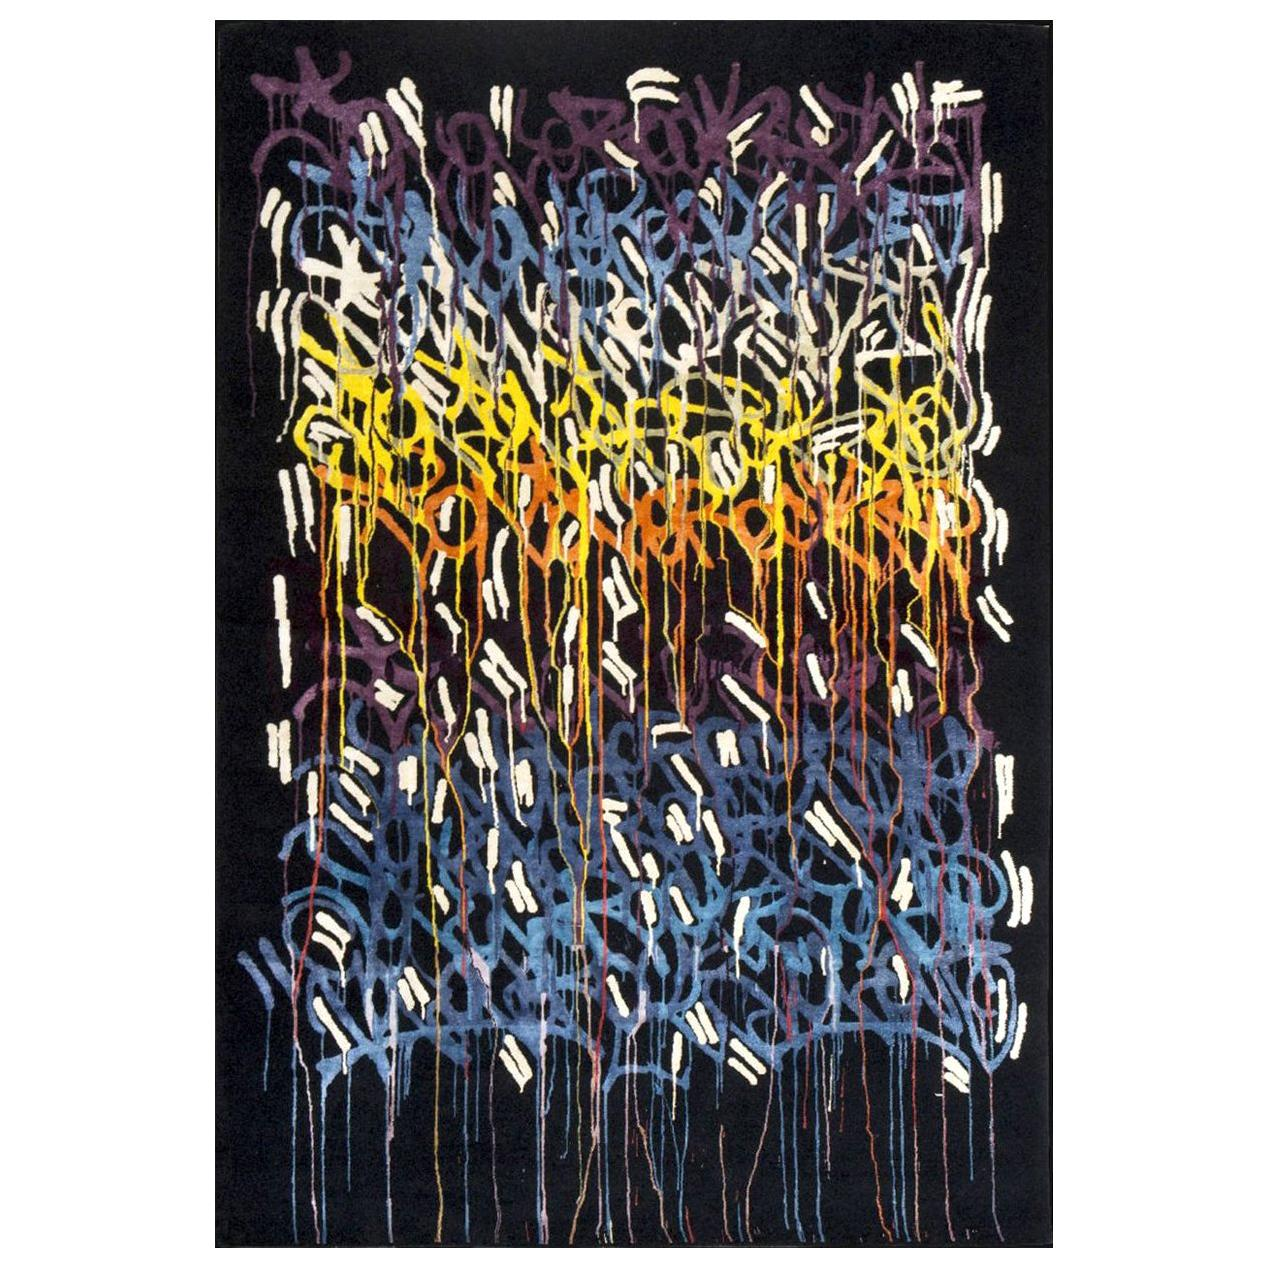 Boccara Limited Edition Hand Knotted Artistic Rug Designed by JonOne, Rainbow